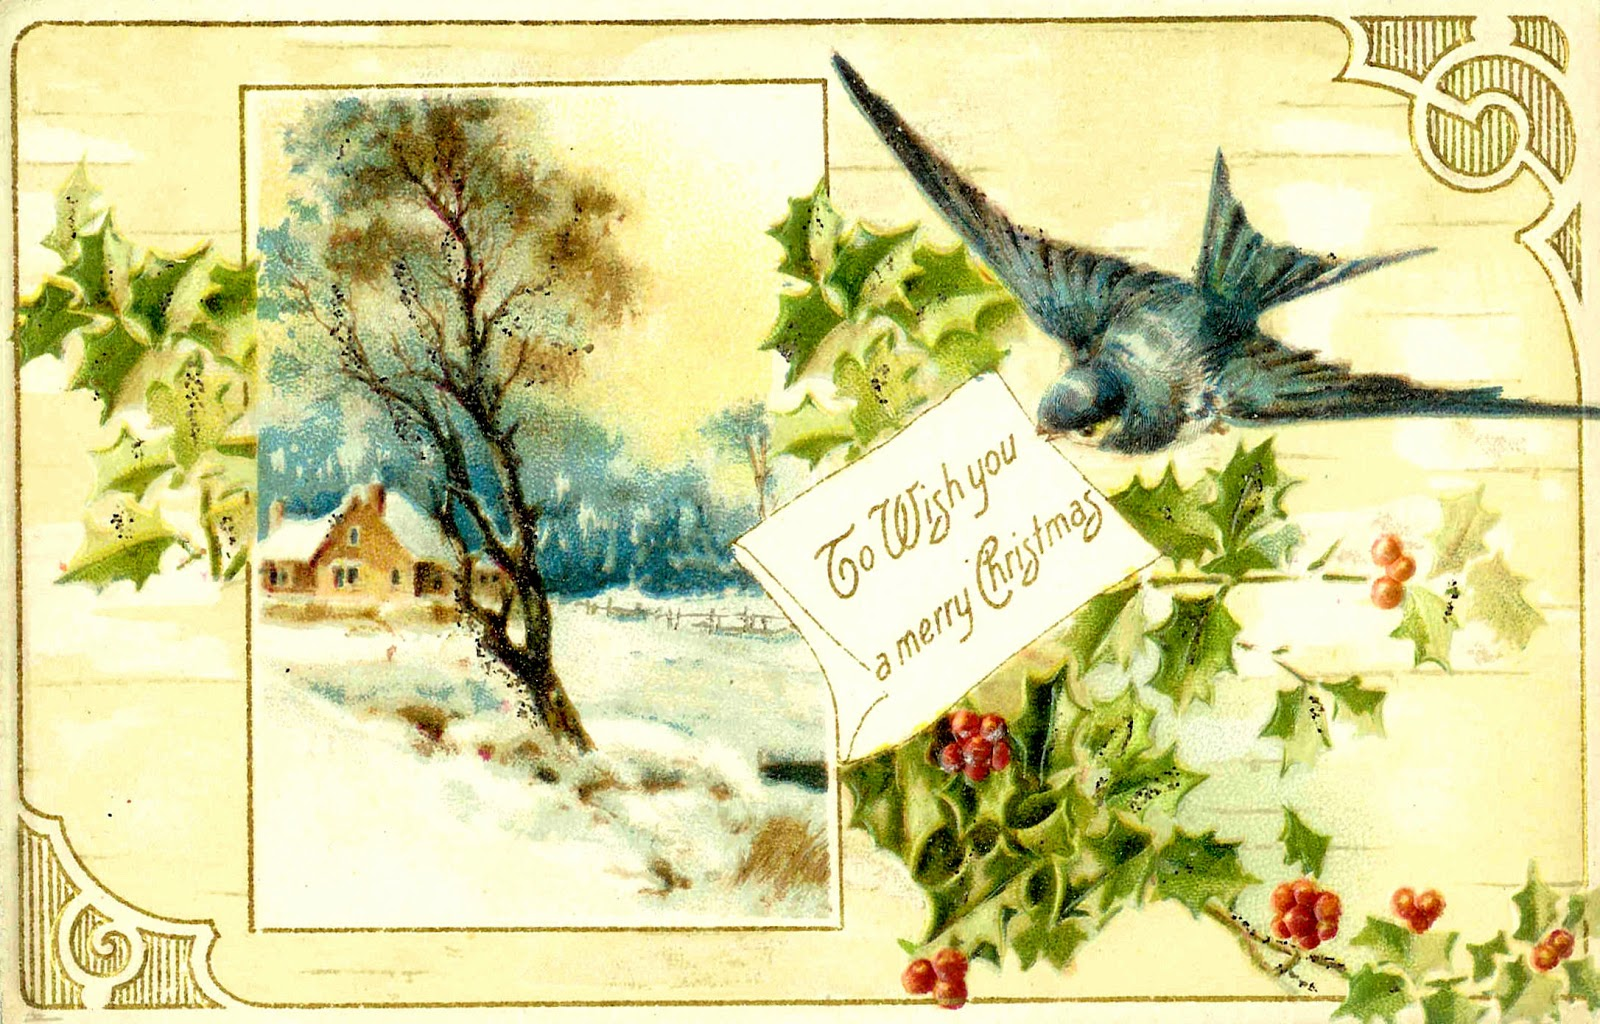 Free printable vintage christmas cards - Free Christmas Graphic Vintage Christmas Postcard With Blue Bird And Holly